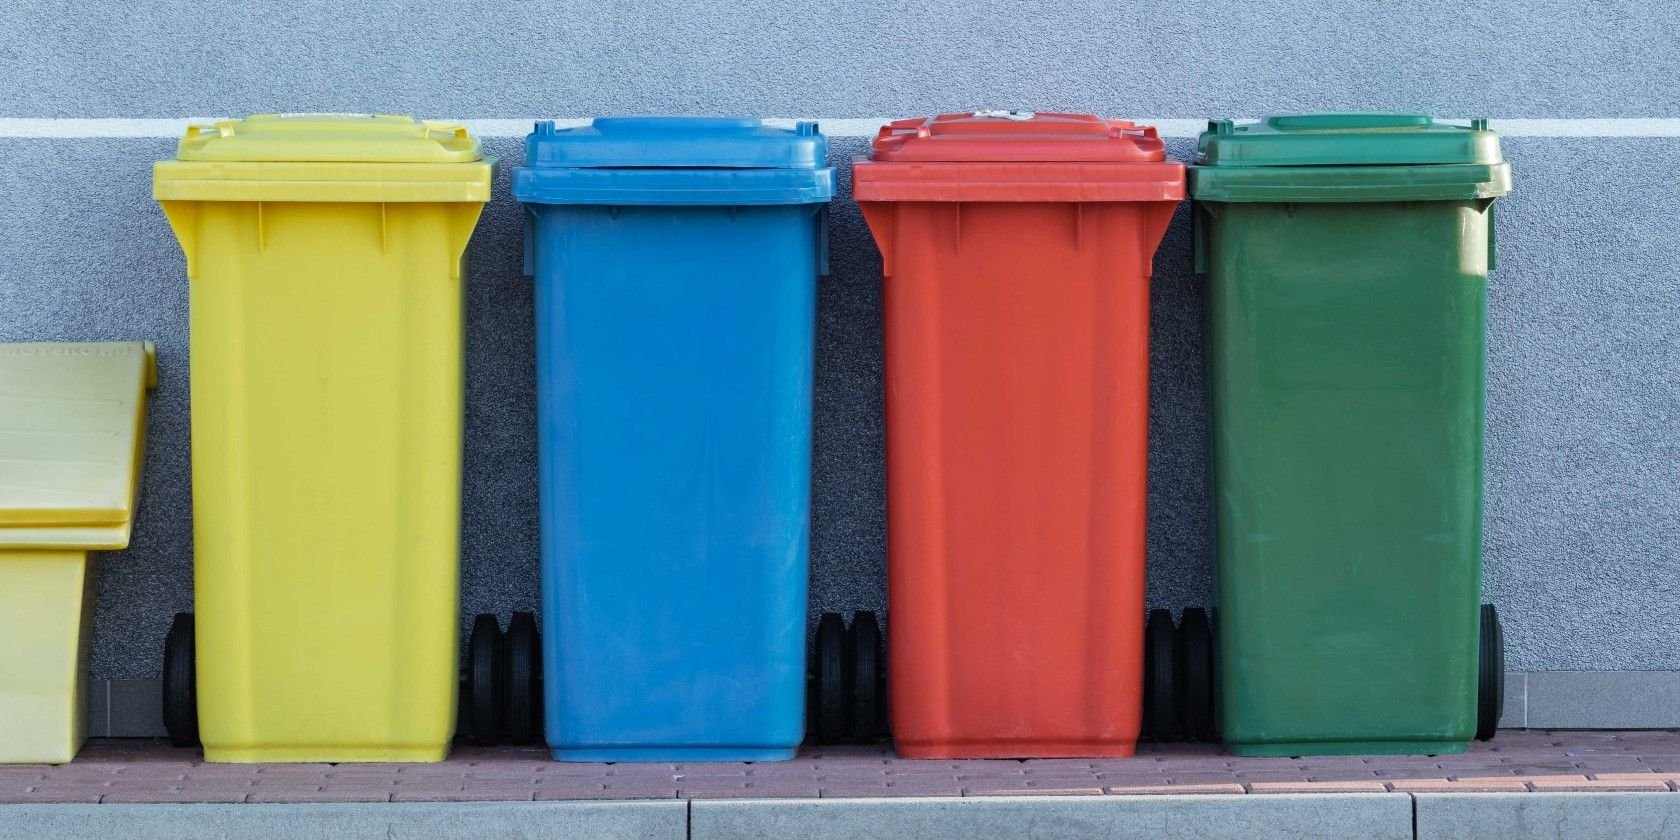 5 Sustainable Sites and Apps to Reduce Waste for an Eco-Friendly World